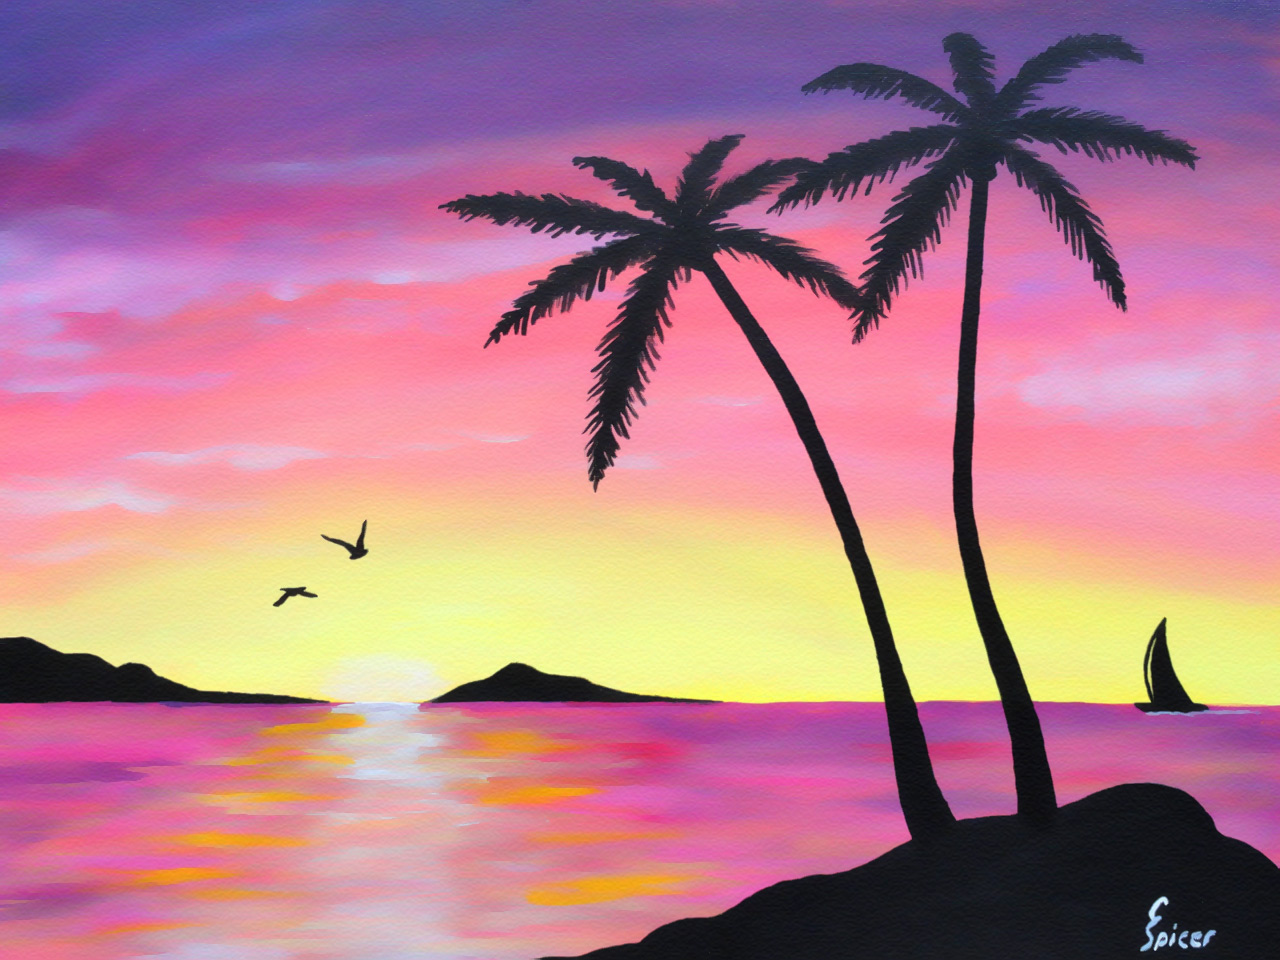 Tropical Sunrise: Acrylic Painting by Christopher Spicer - Behind silhouetted palm trees, a sailboat navigates between islands as the sun rises over a tropical paradise.